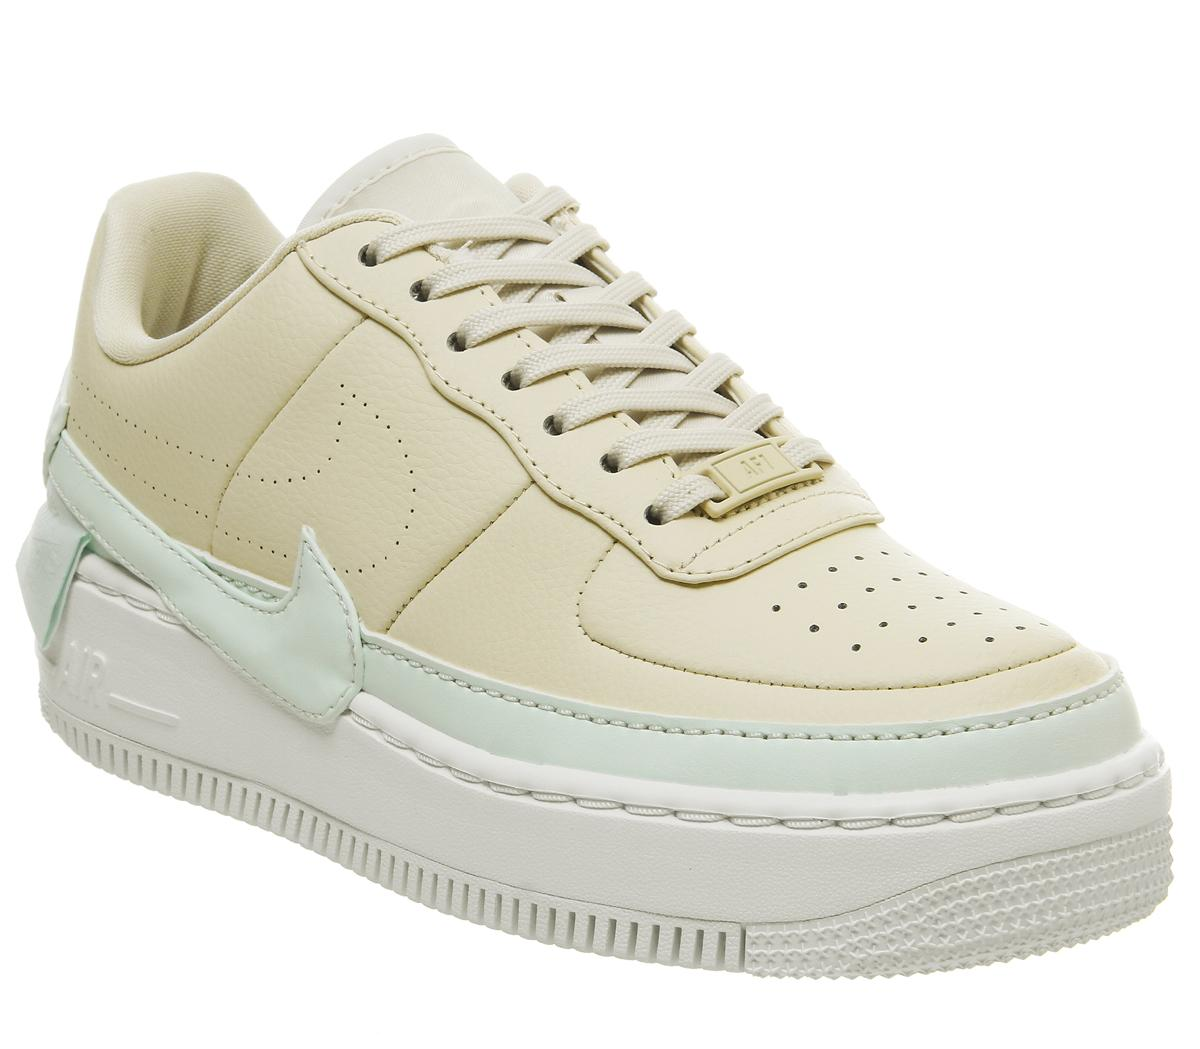 Nike Air Force 1 Jester Trainers Light